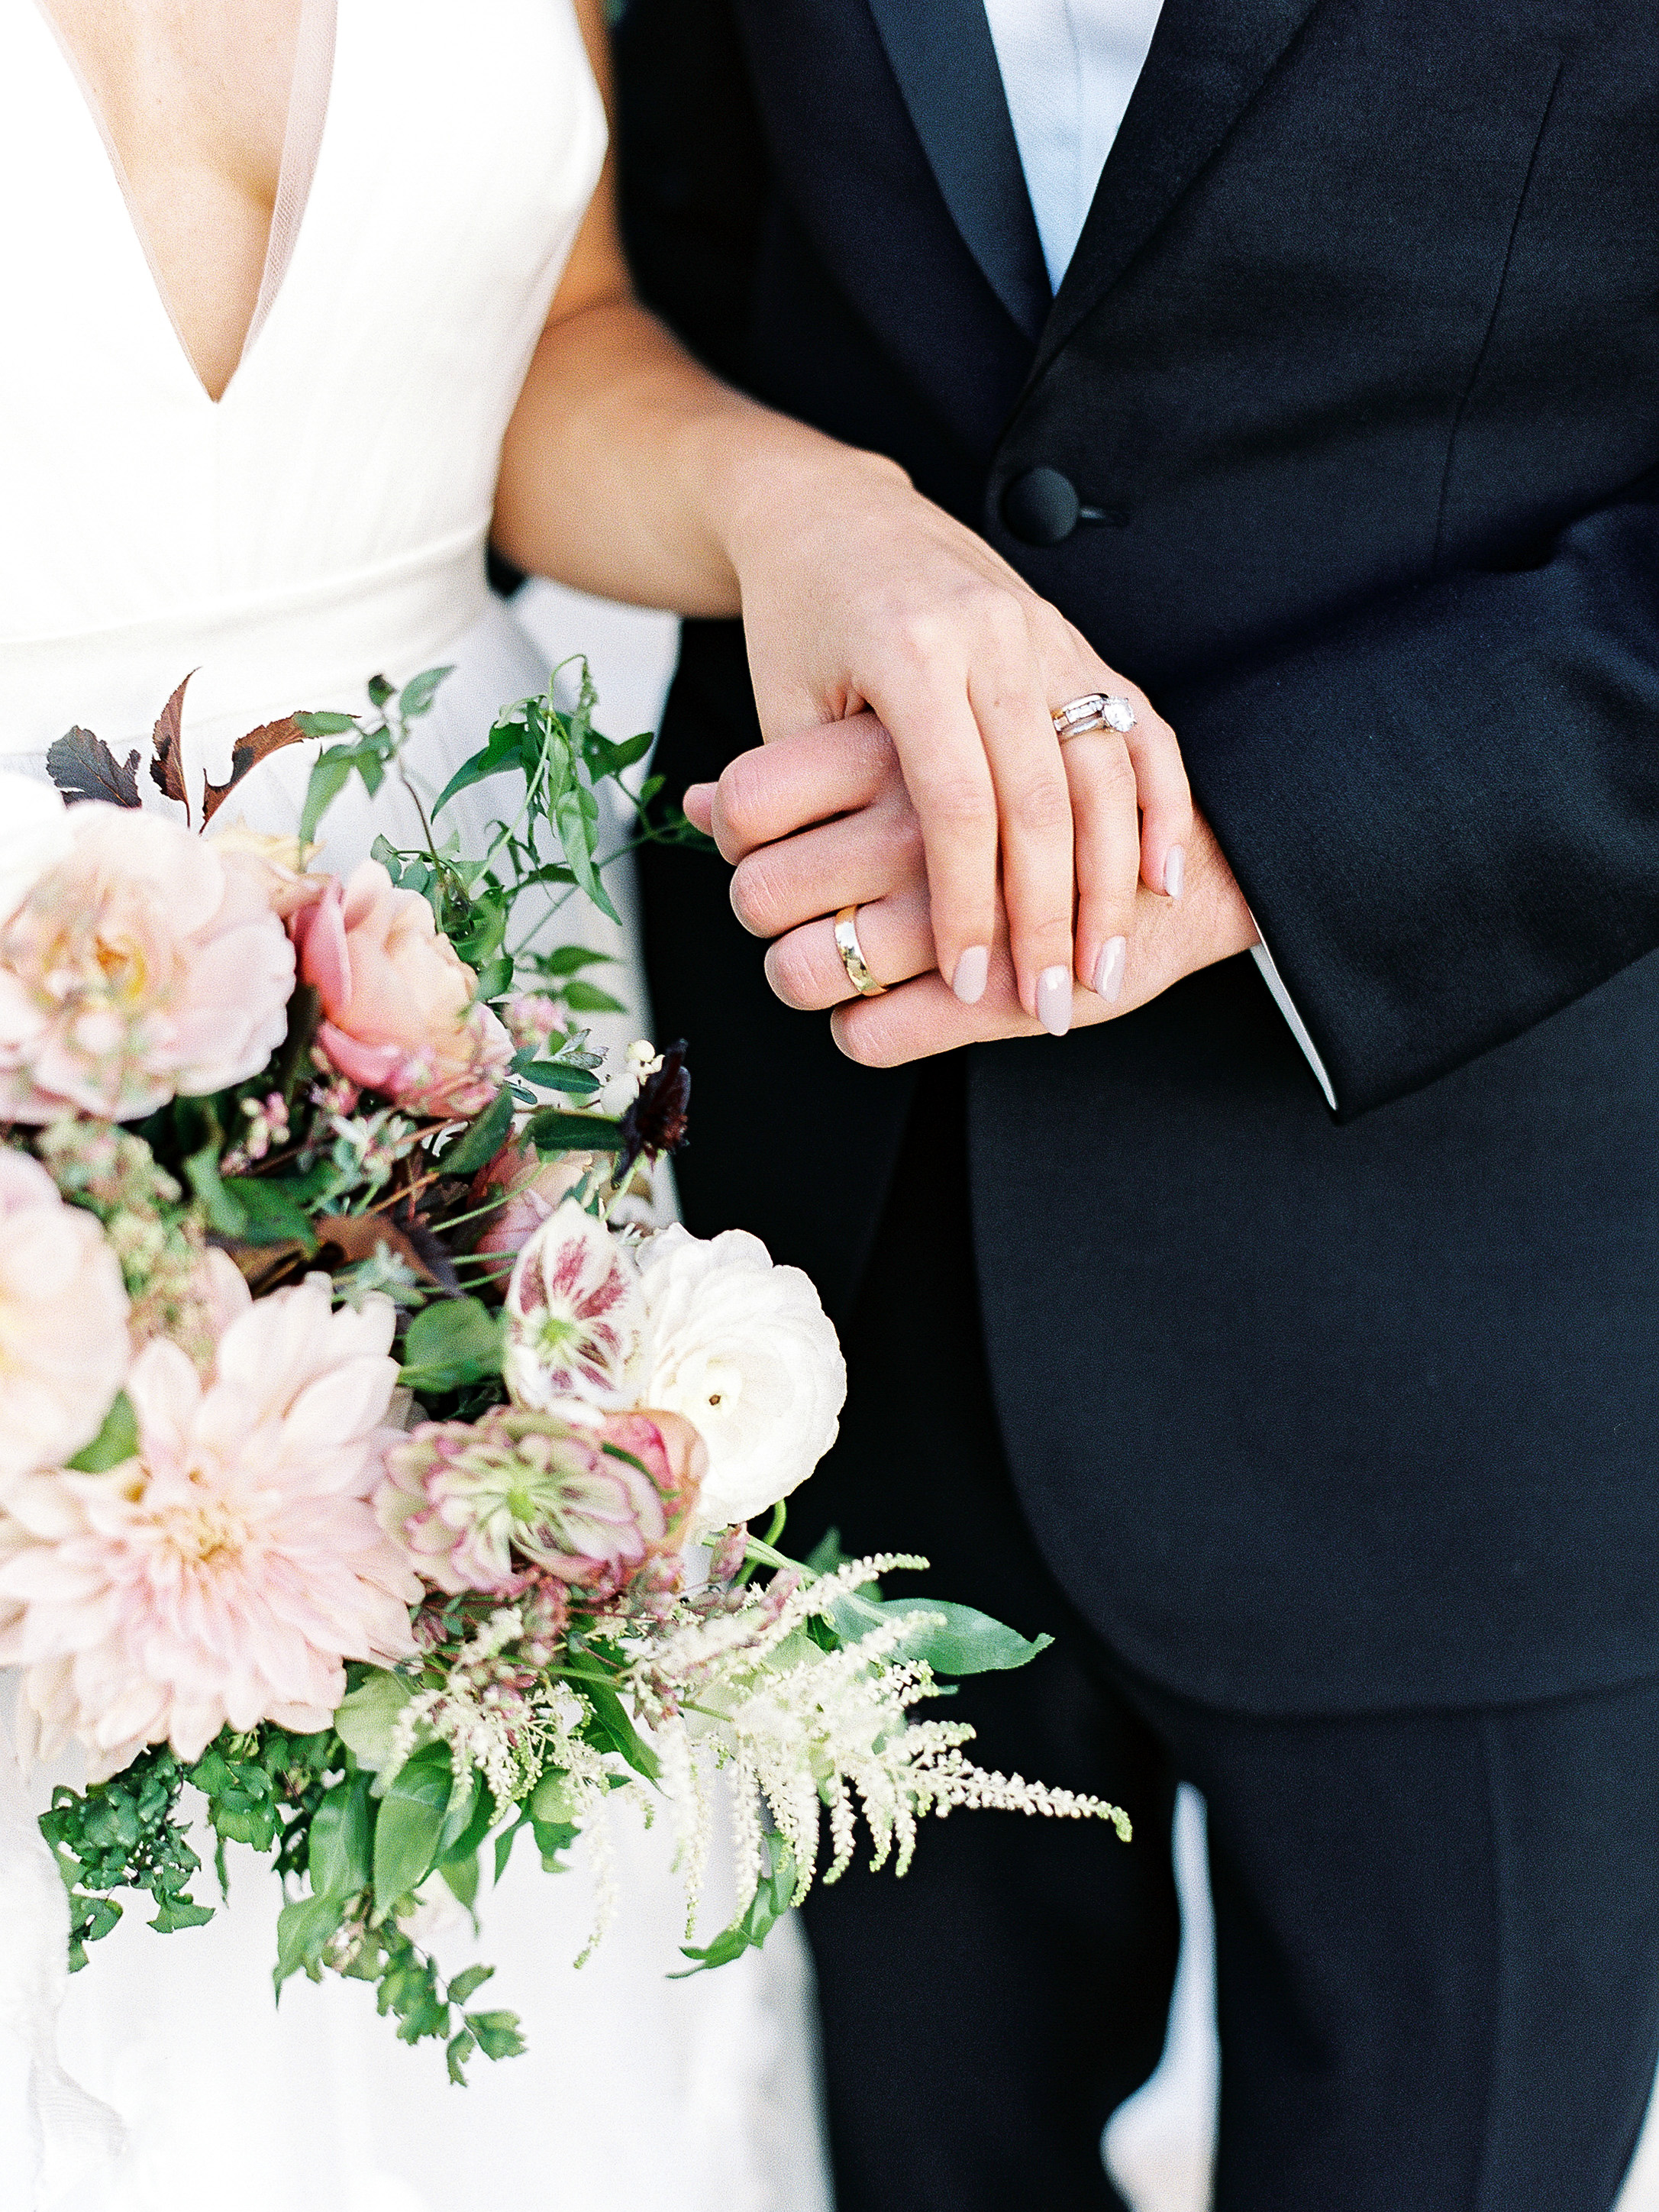 How to Prepare Your Hands for Your Wedding Day